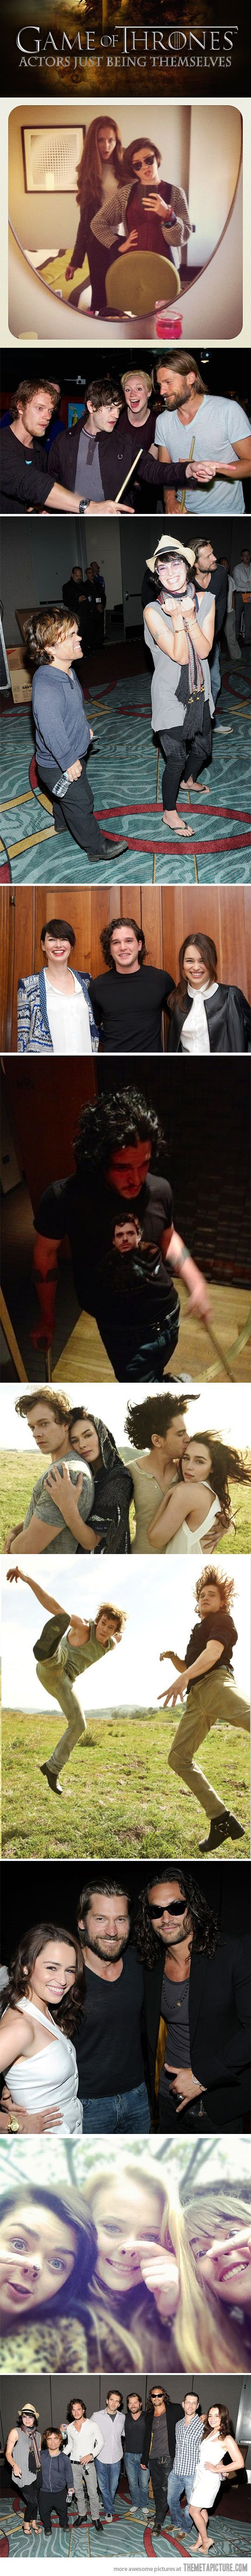 Game of Thrones actors just being themselves... - The Meta Picture